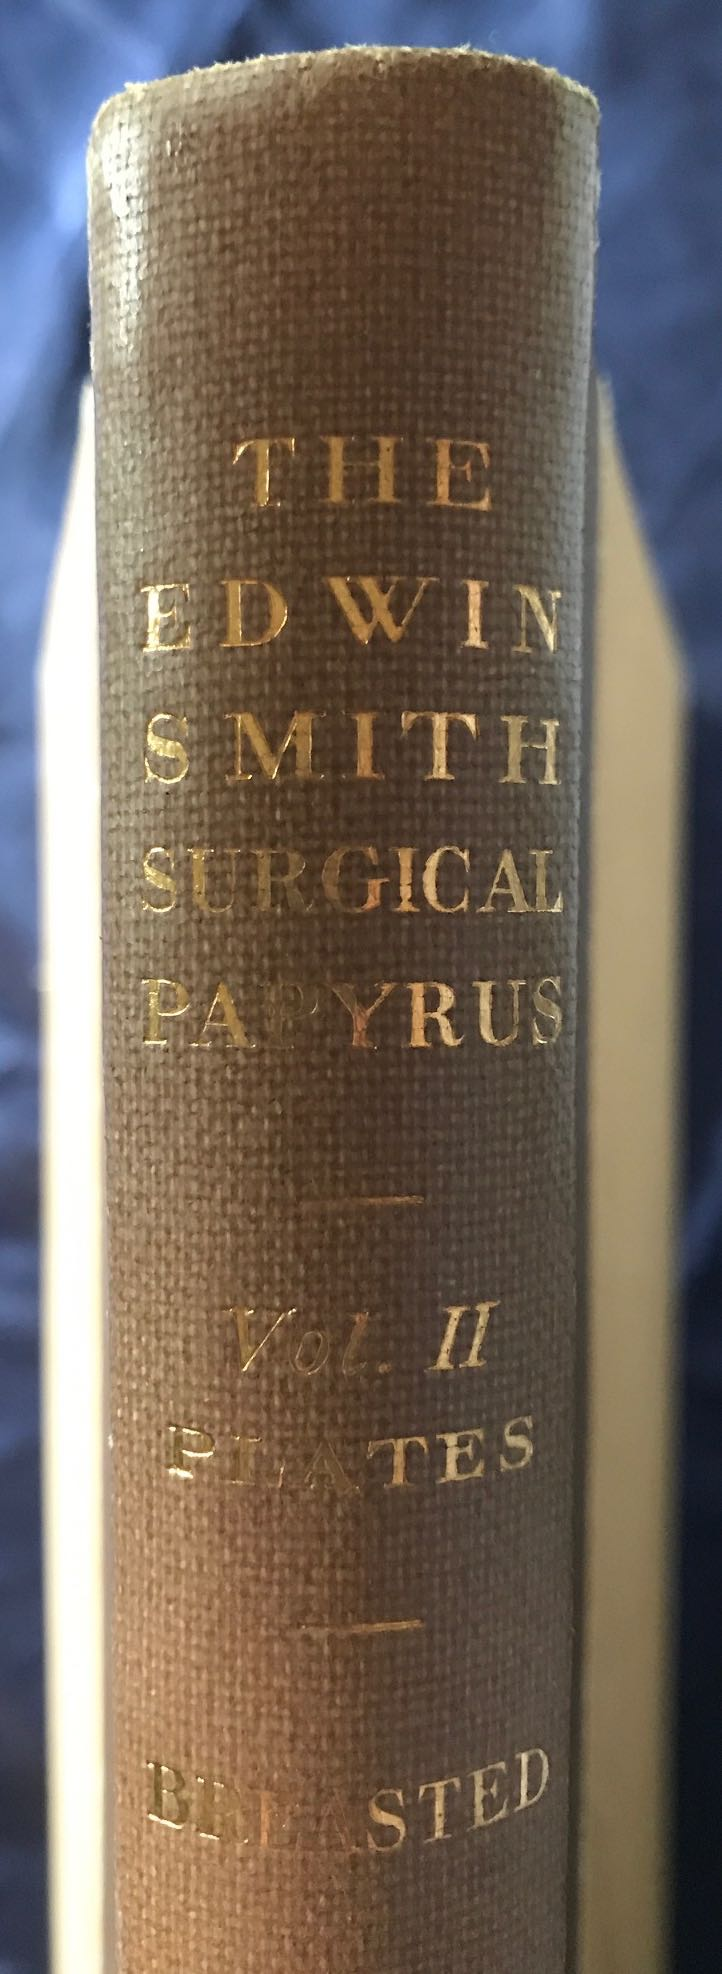 The Edwin Smith surgical papyri  Vol  I: Hieroglyphic